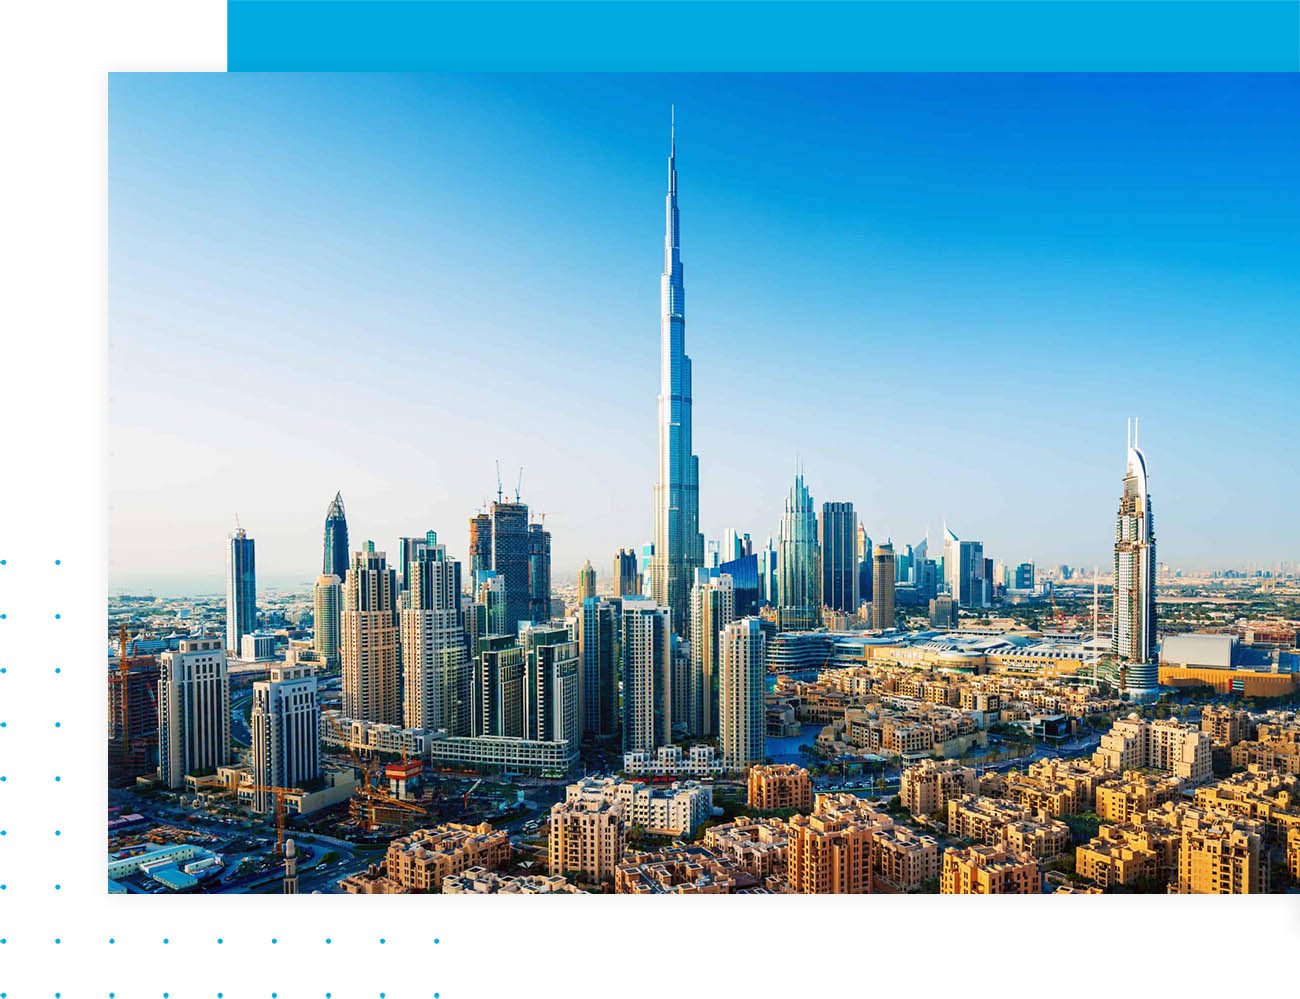 Best Districts for Real Estate Investment in Dubai